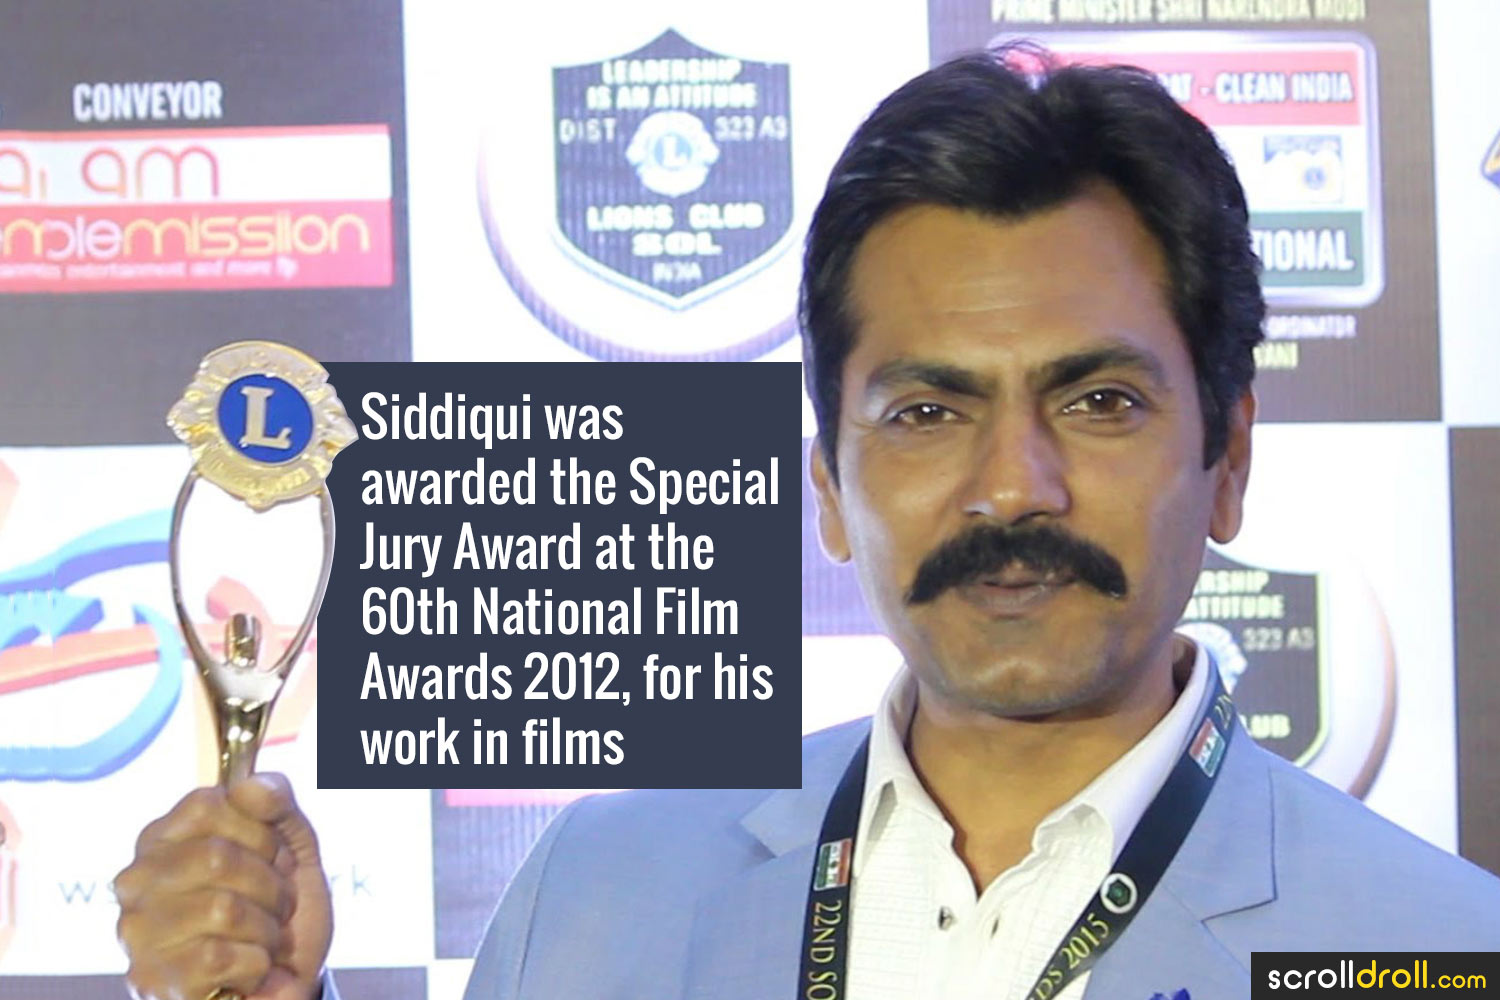 Facts about Nawazuddin Siddique- Siddiqui was the Special Jury Award at the 60th National Film Awards 2012,for his work in films